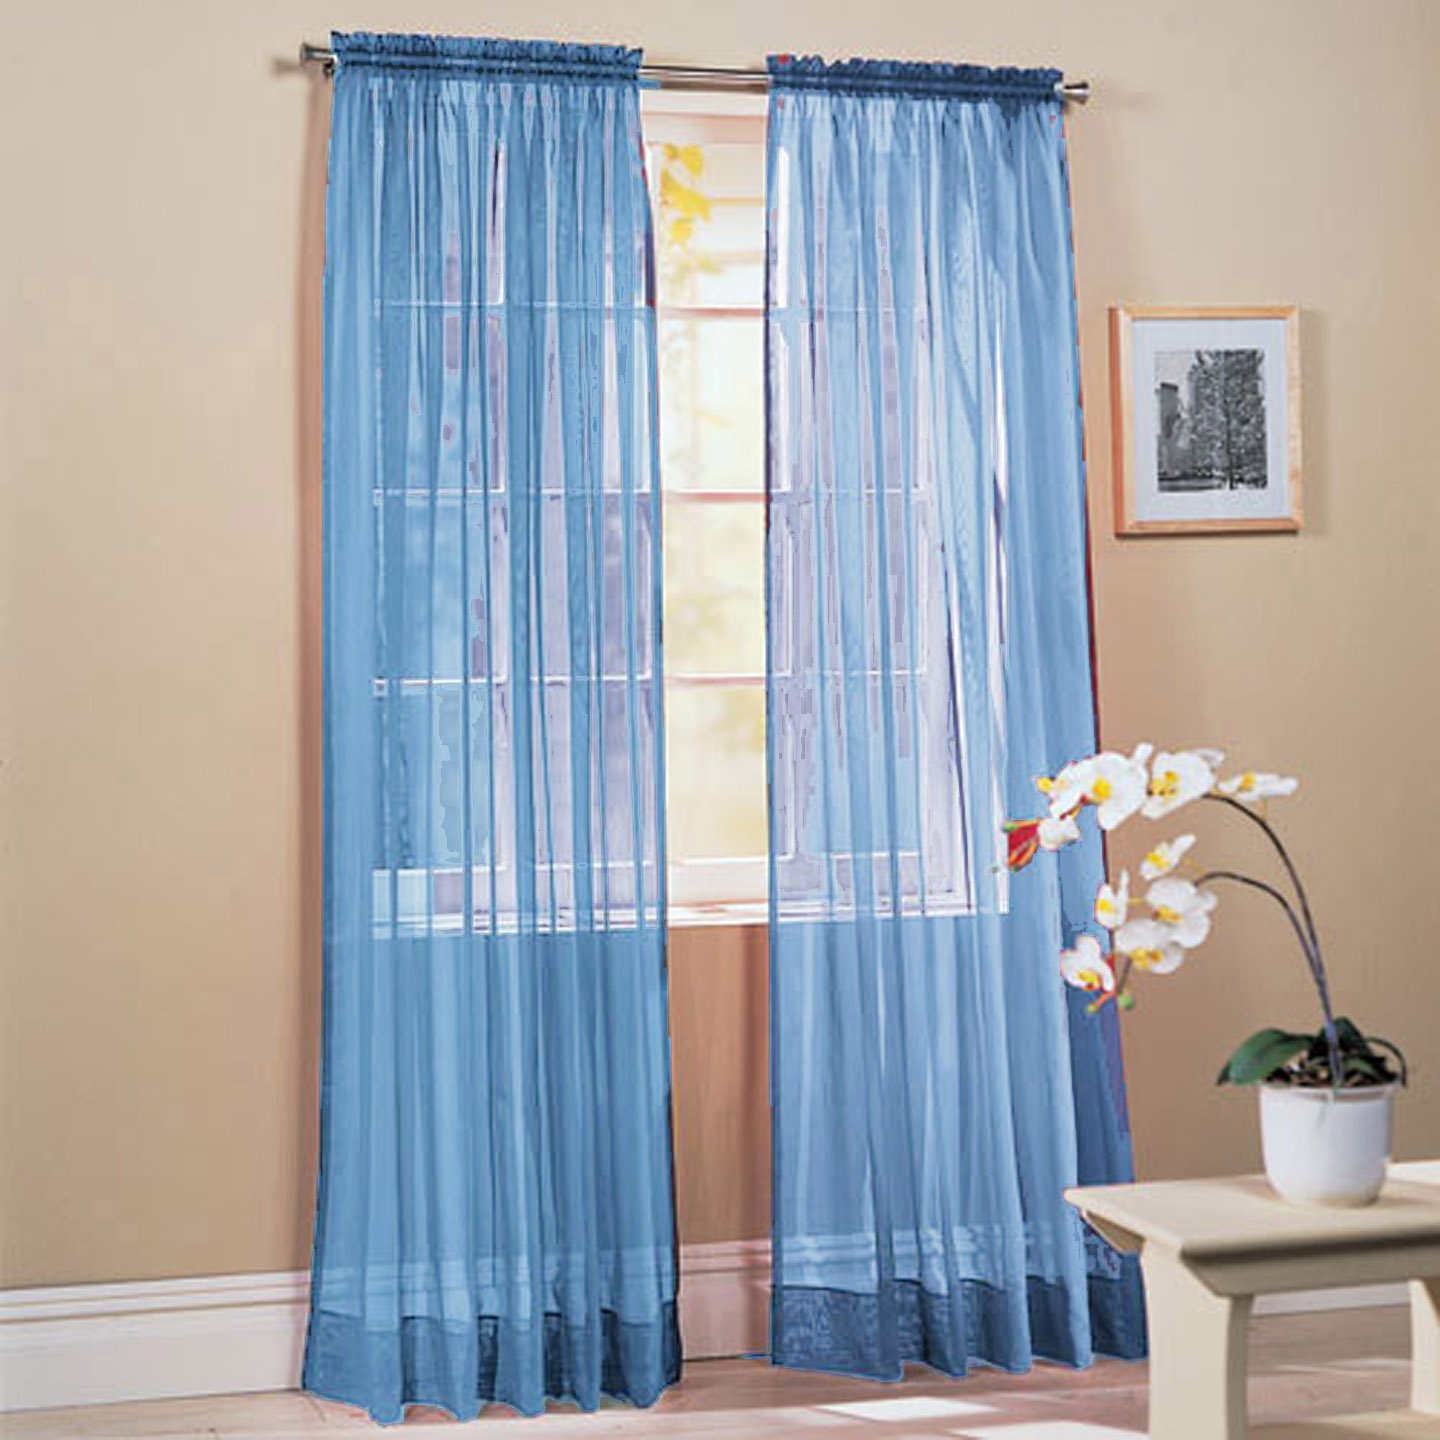 Sheer curtains for delicate lights and looks